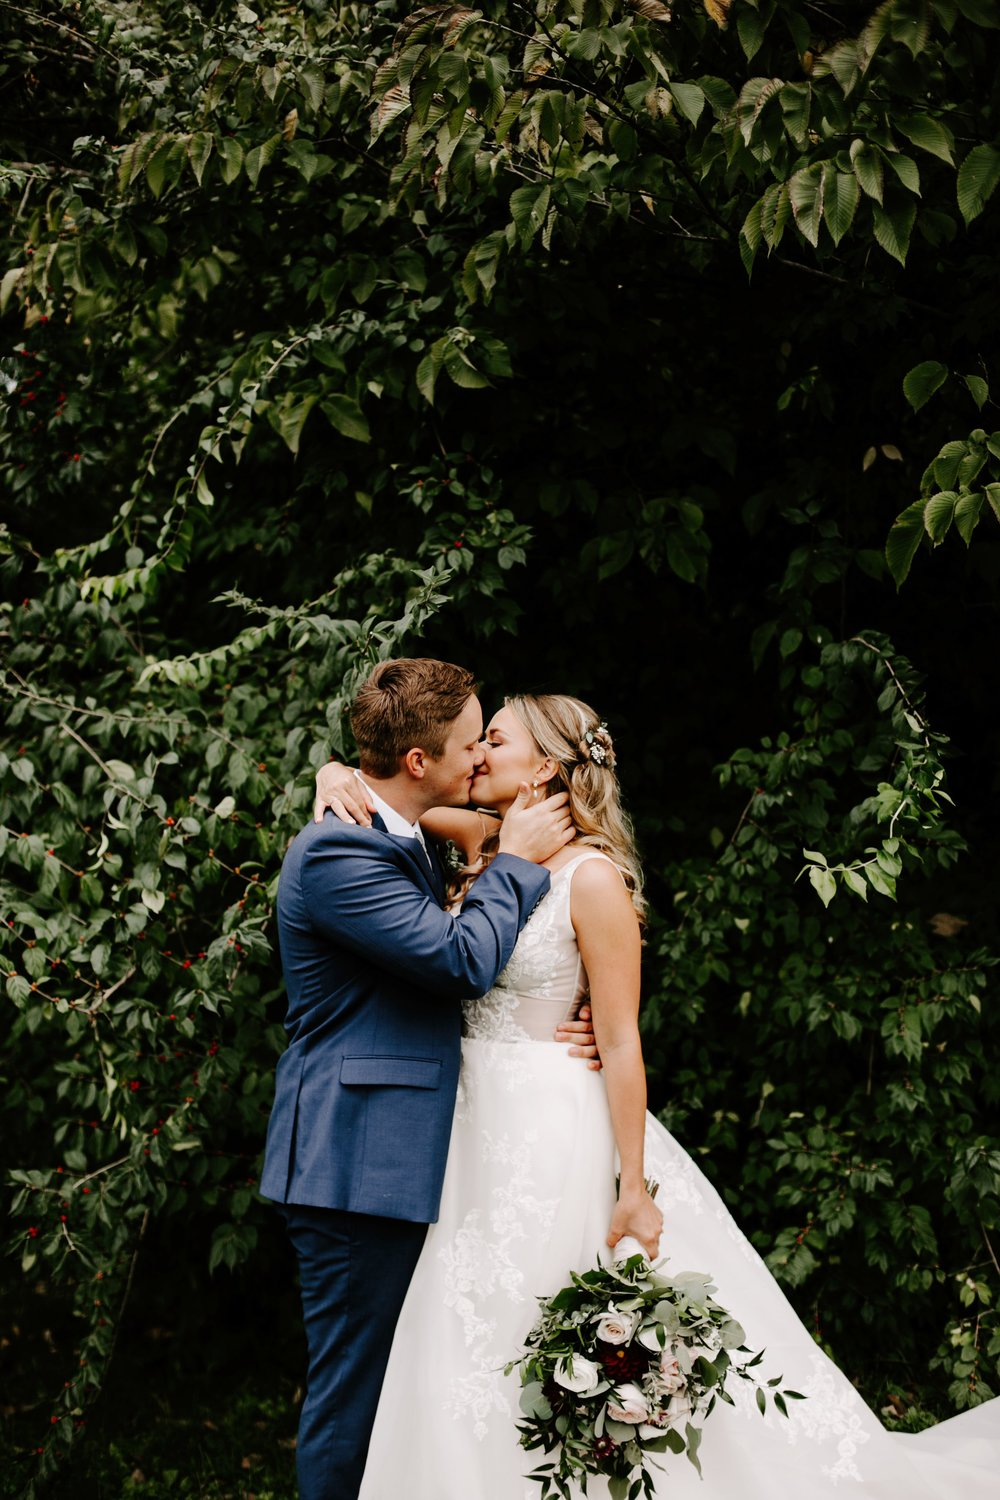 Katy and Michael Wedding at The Ritz Charles Garden Pavillion in Indianapolis Indiana by Emily Elyse Wehner Photography LLC-158.jpg